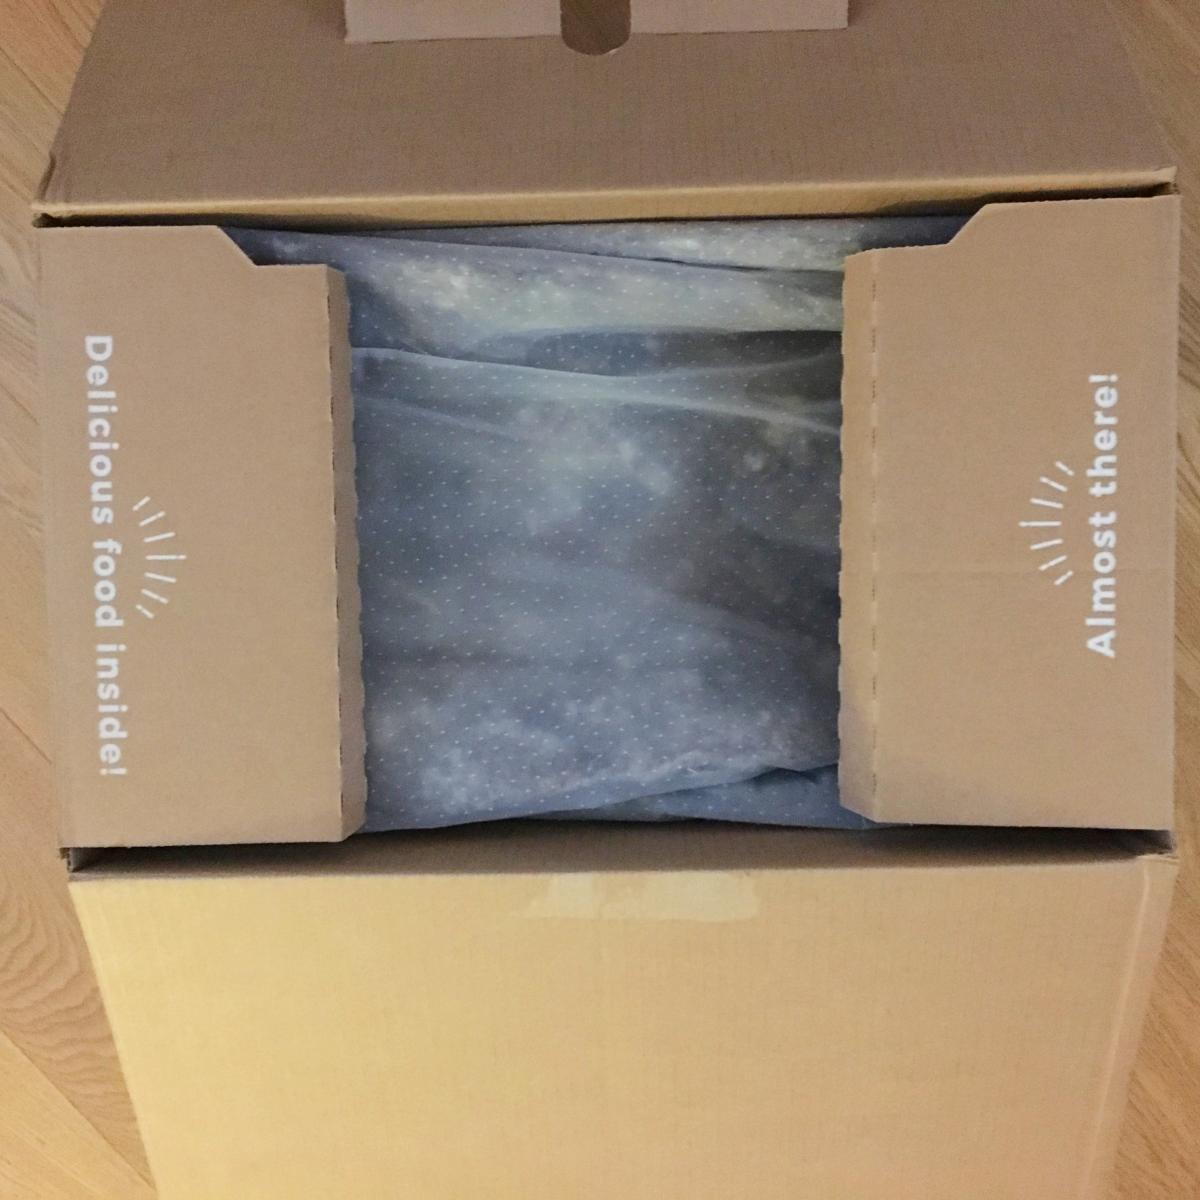 Everdine unboxing – wool insulation